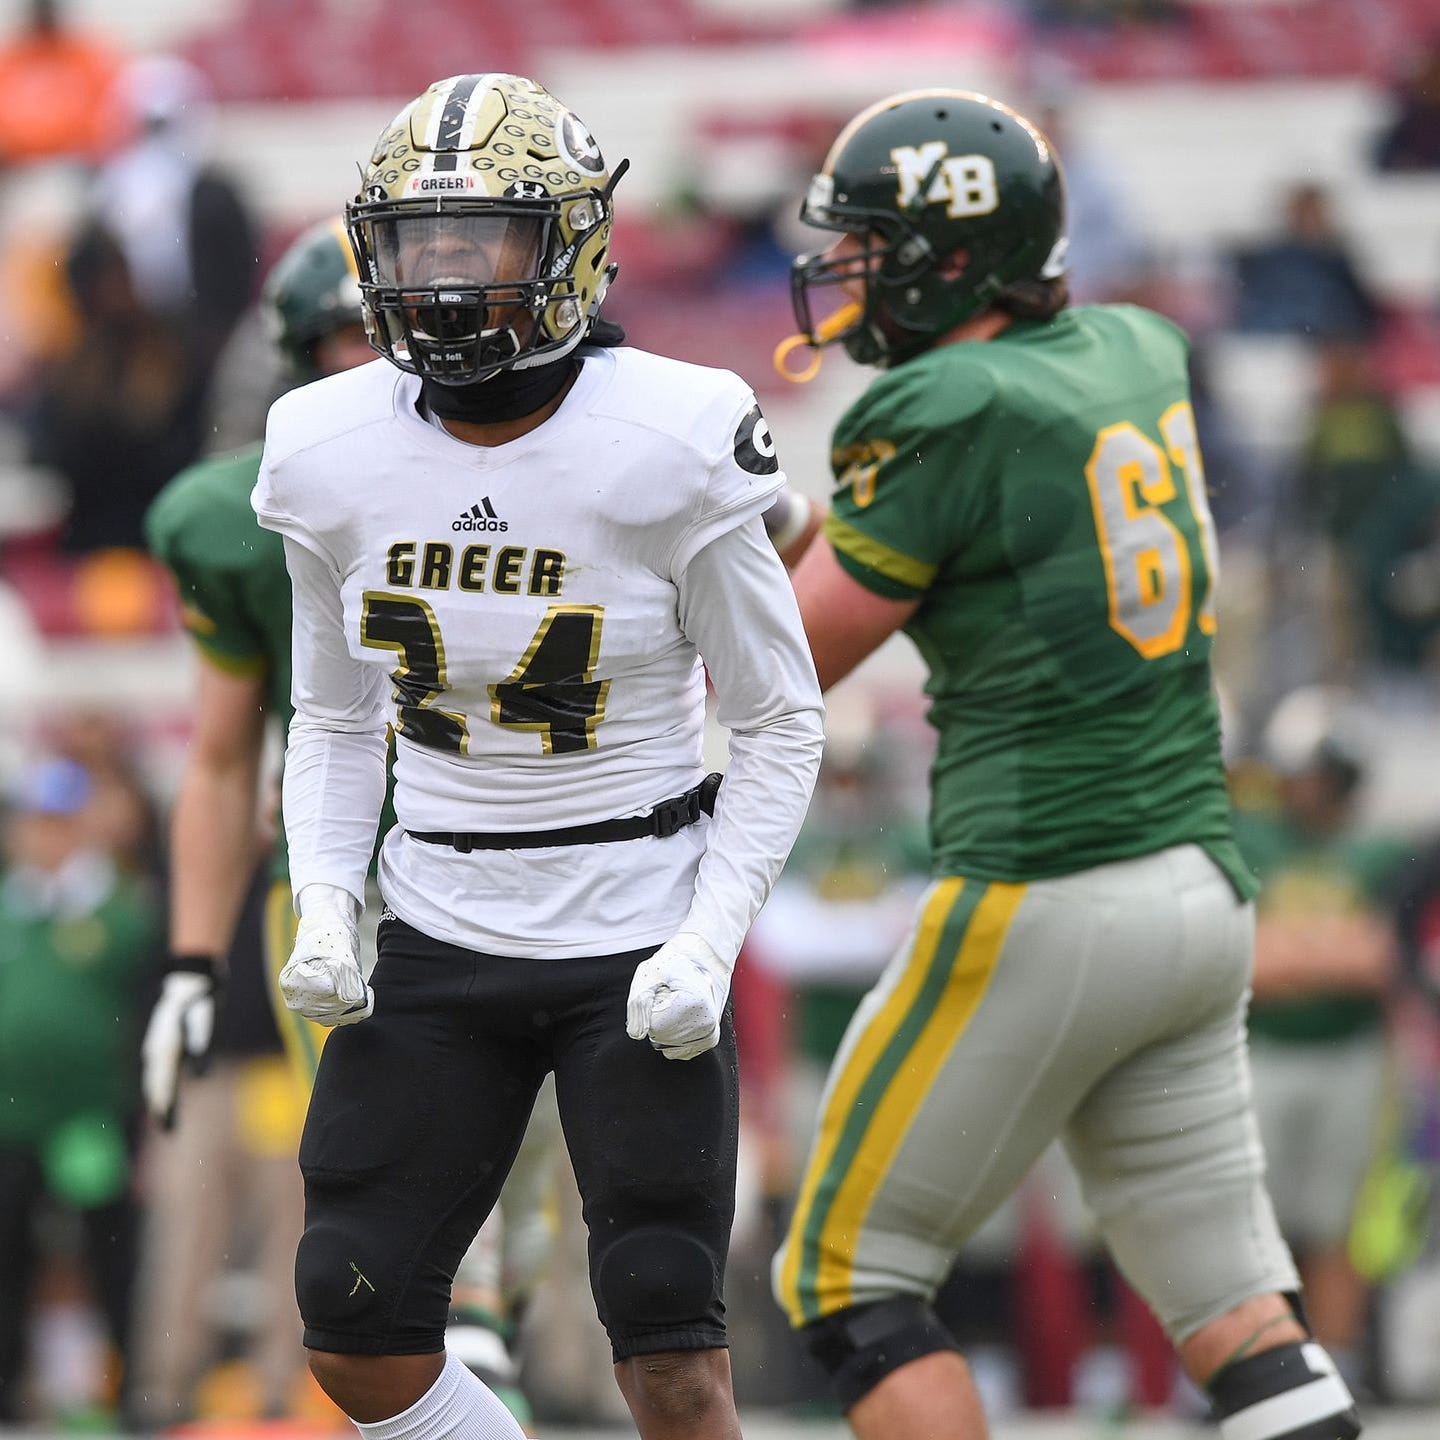 Greer's Najajuan Smith (24) reacts after a sack in the Yellow Jackets' 37-21 loss to Myrtle Beach in the Class AAAA state final Friday in Columbia.